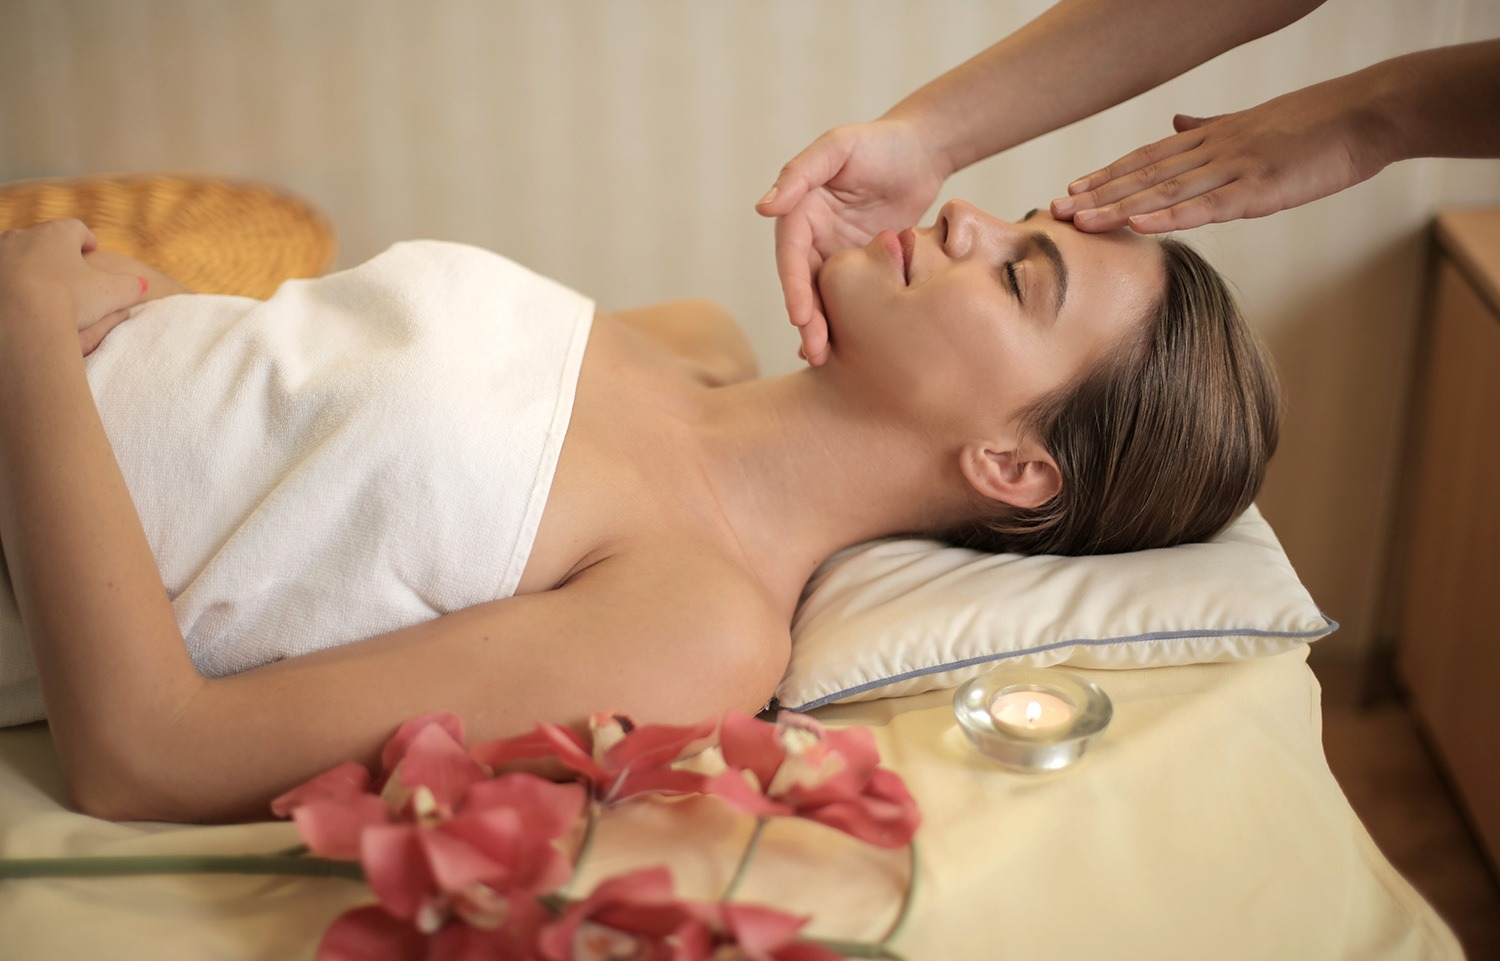 Woman lay down on a massage table having a beauty therapy treatment applied to her. For use on the Level 3 Beauty Therapy Course page.